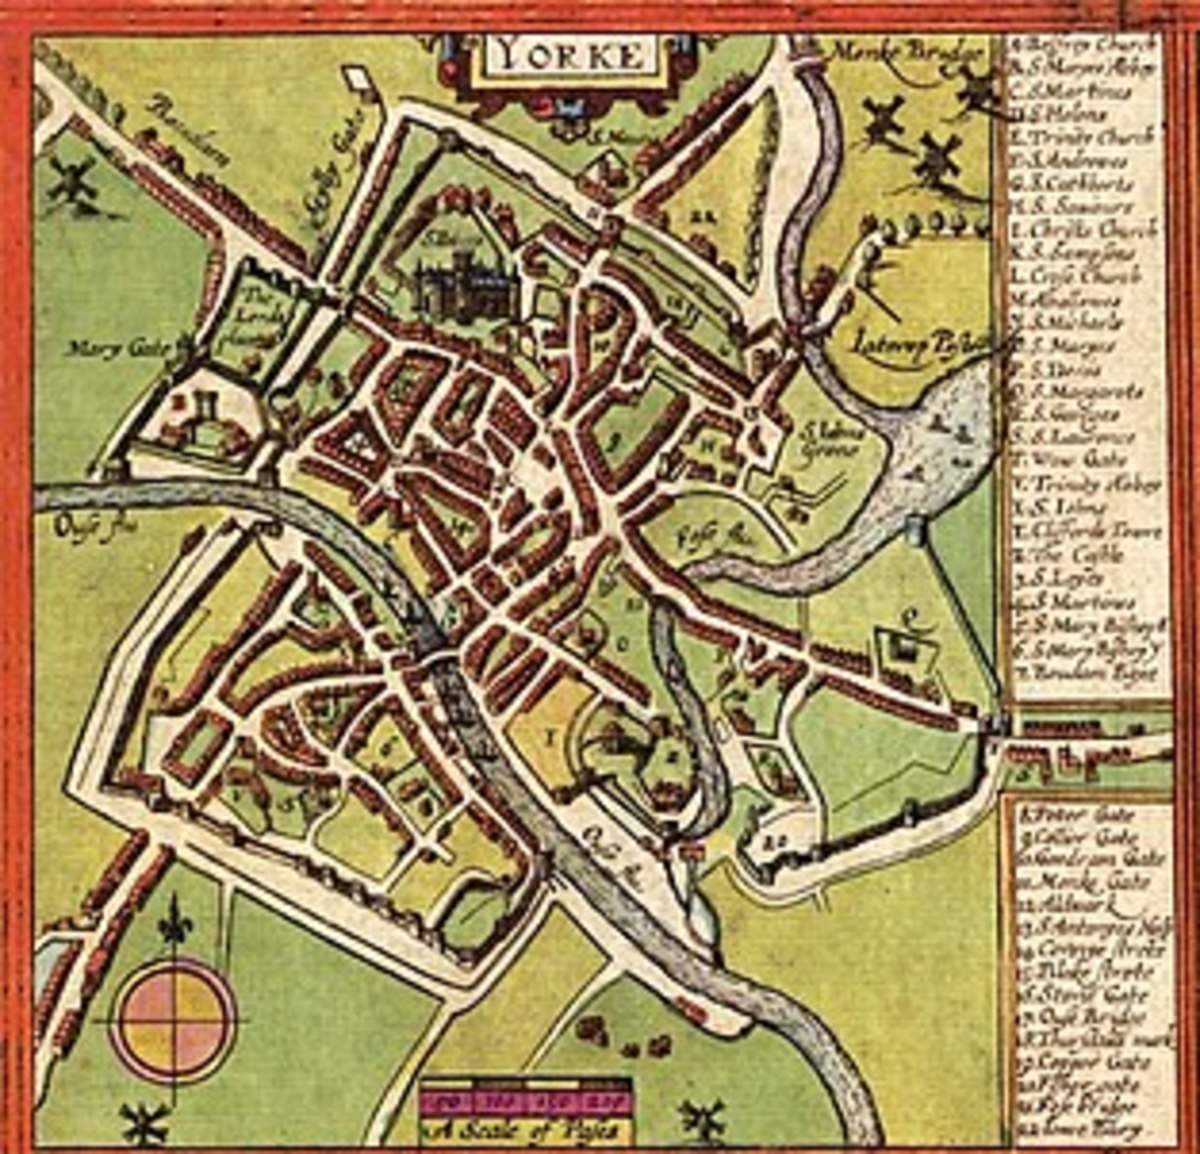 York in the 17th Century - 1611 map drawn up by John Speed